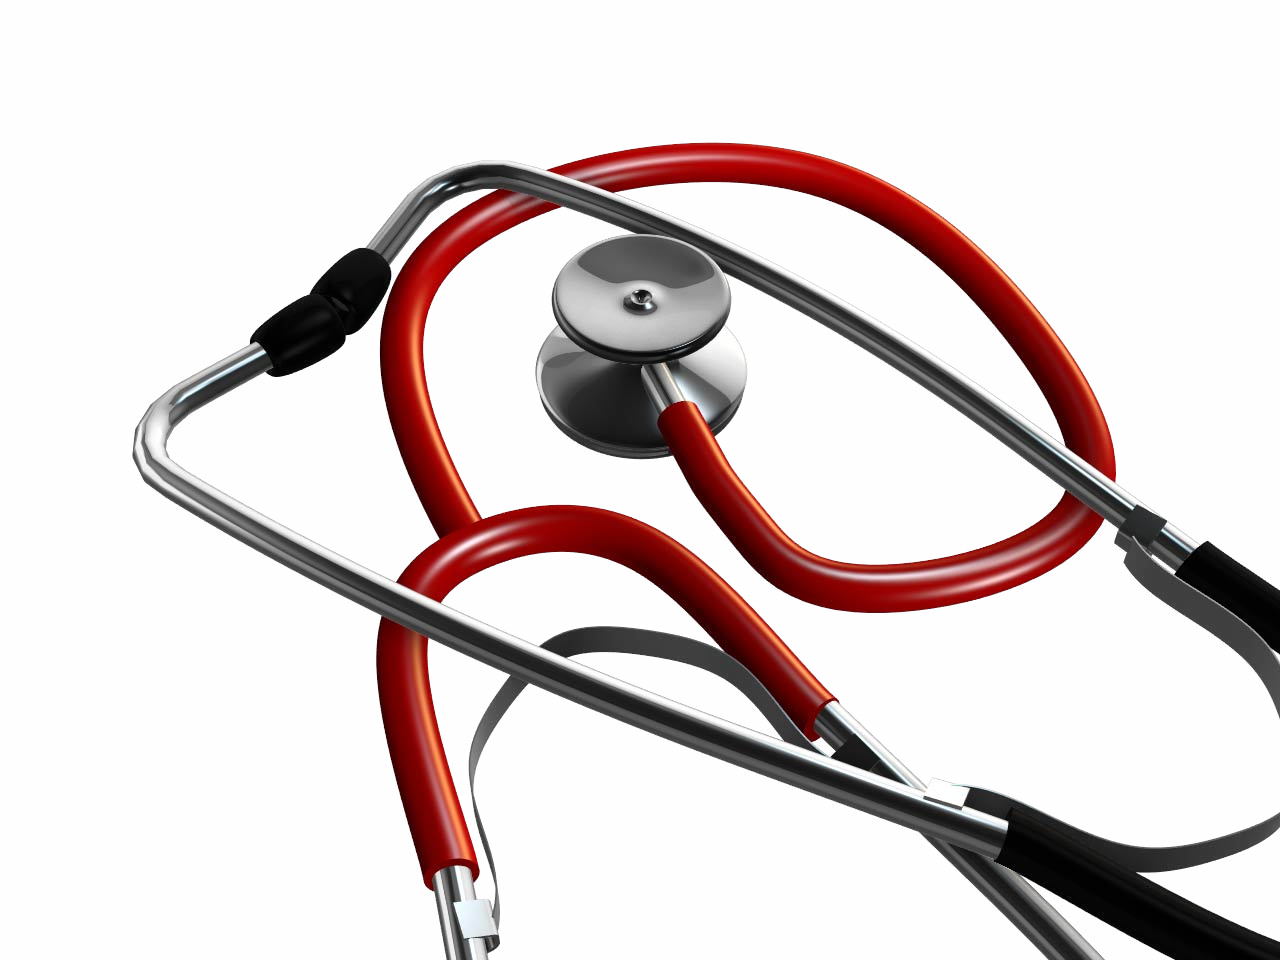 stethoscope_1548006228289.png